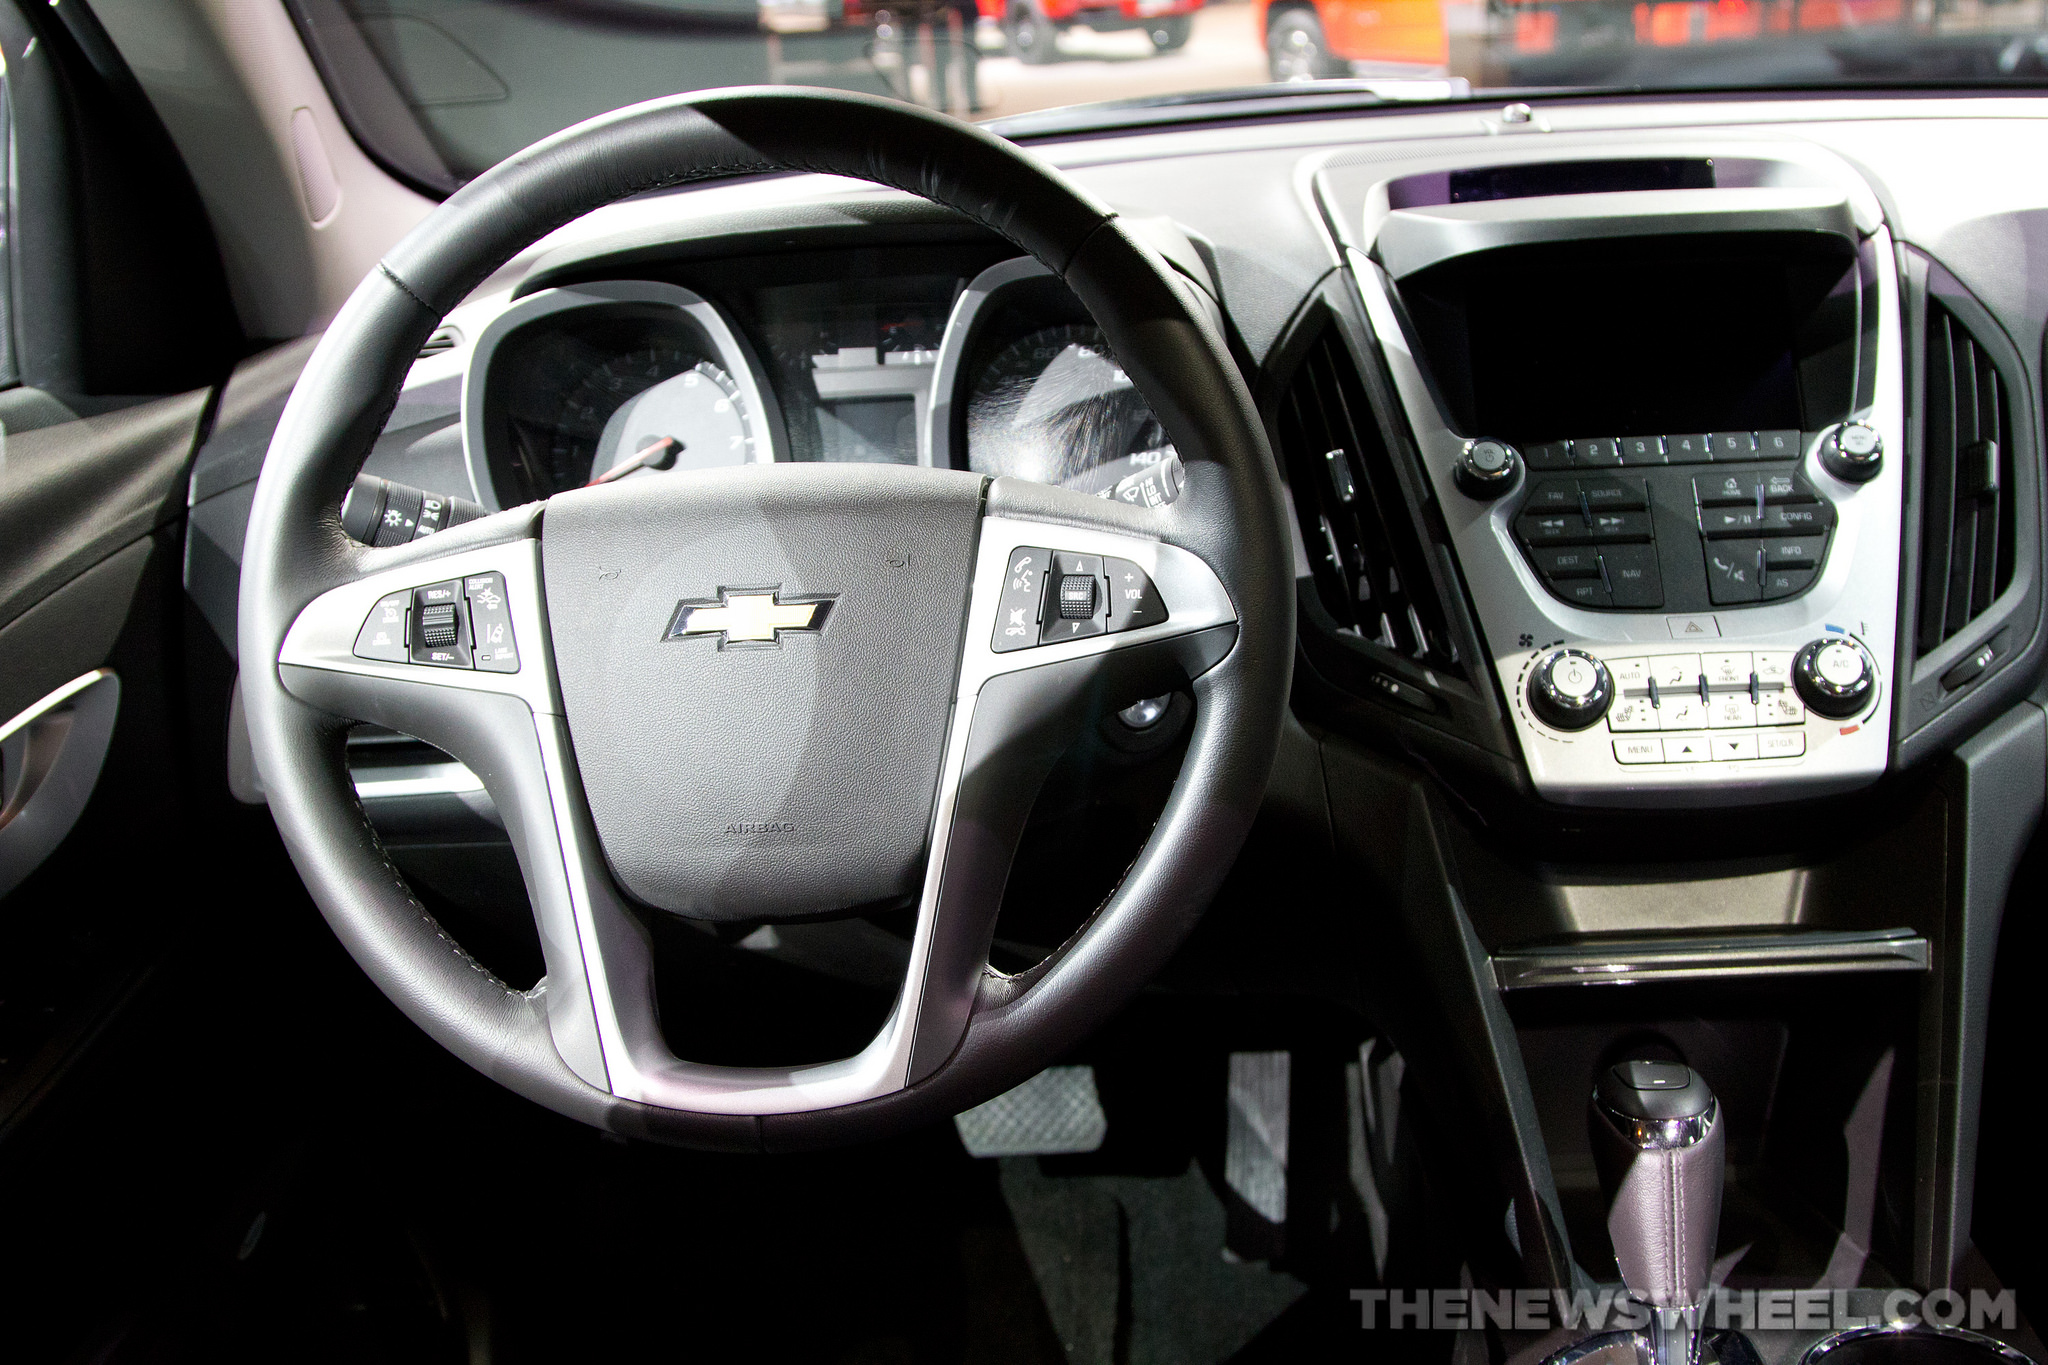 Chevy Equinox Lt >> 2016 Chevy Equinox Overview - The News Wheel